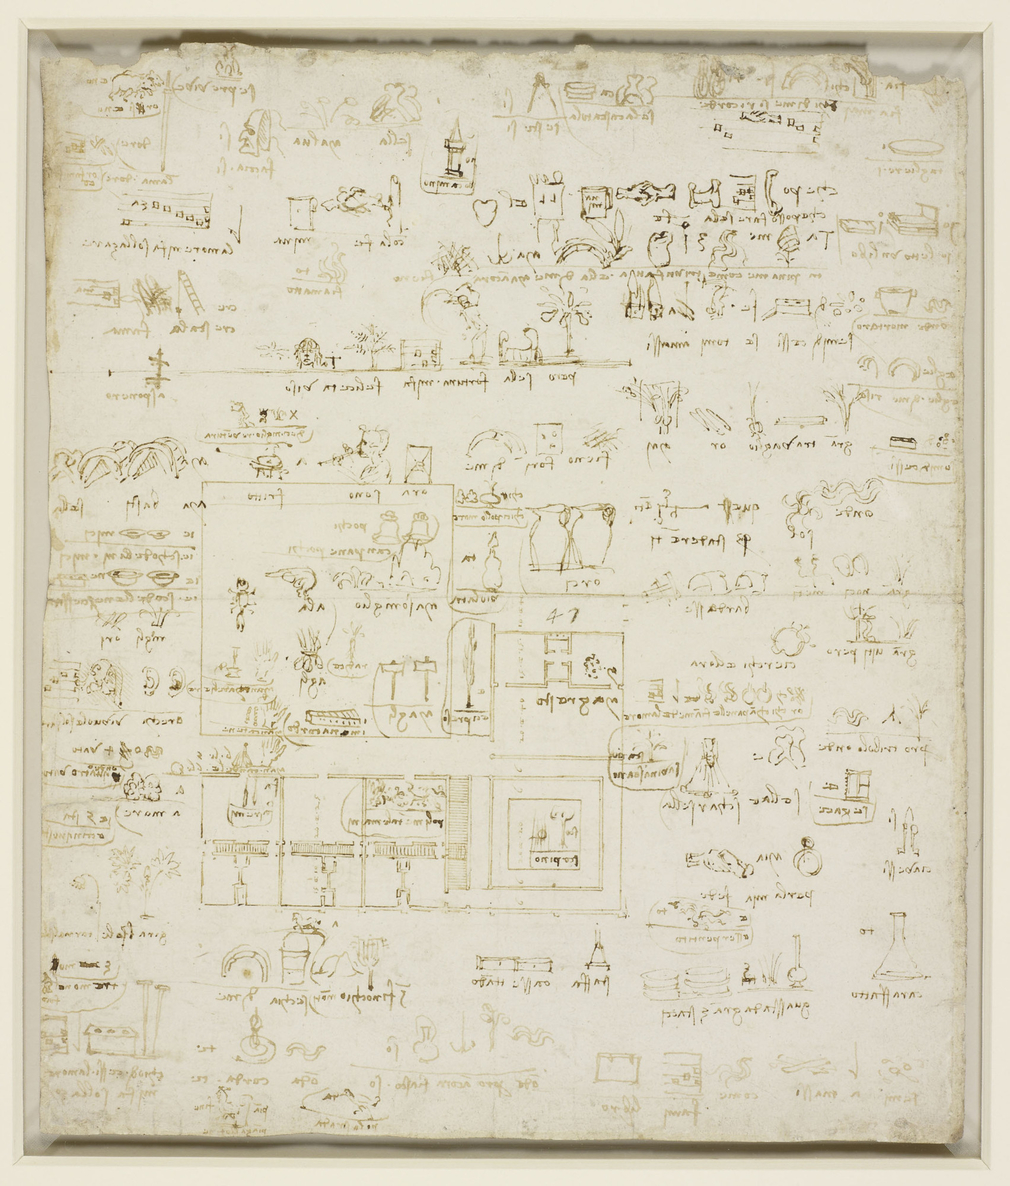 Recto: a sheet of puzzle writing, chiefly in the form of pictographs; the majority of the pictographs are made up of animals and plants. Verso: pictographs drawn over an architectural plan, possibly a project to remodel the Corte Vecchia ('Old Court